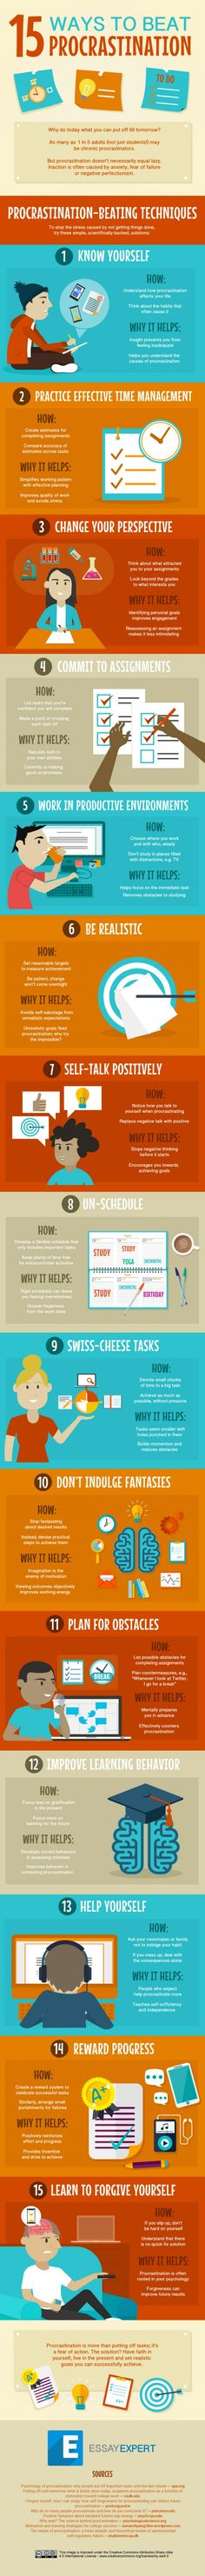 15 Ways to Beat #Procrastination [Infographic] | Daily #Infographic